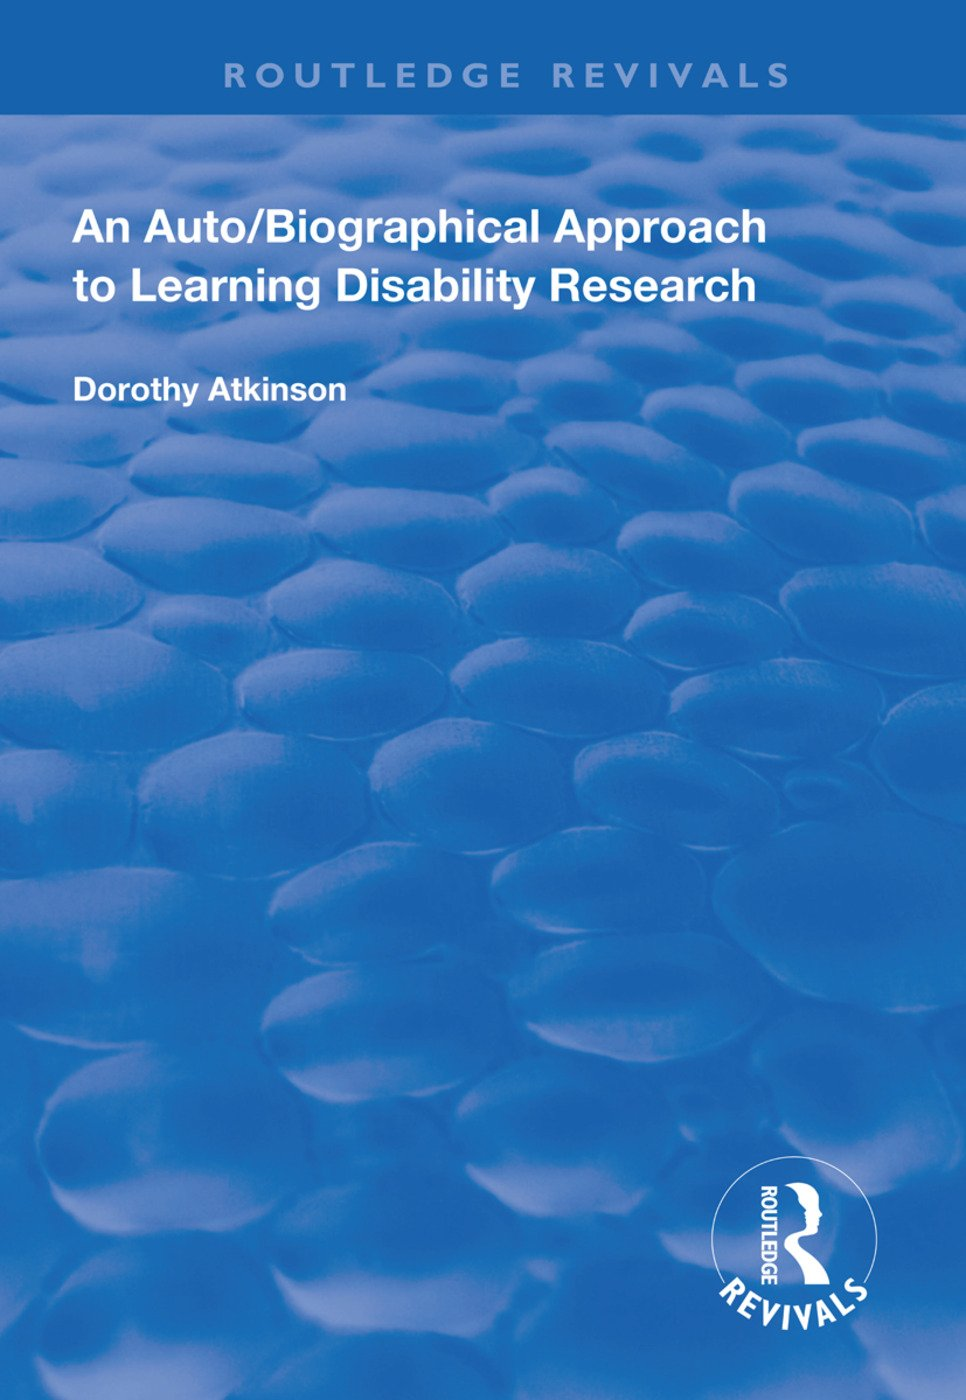 An Auto/Biographical Approach to Learning Disability Research